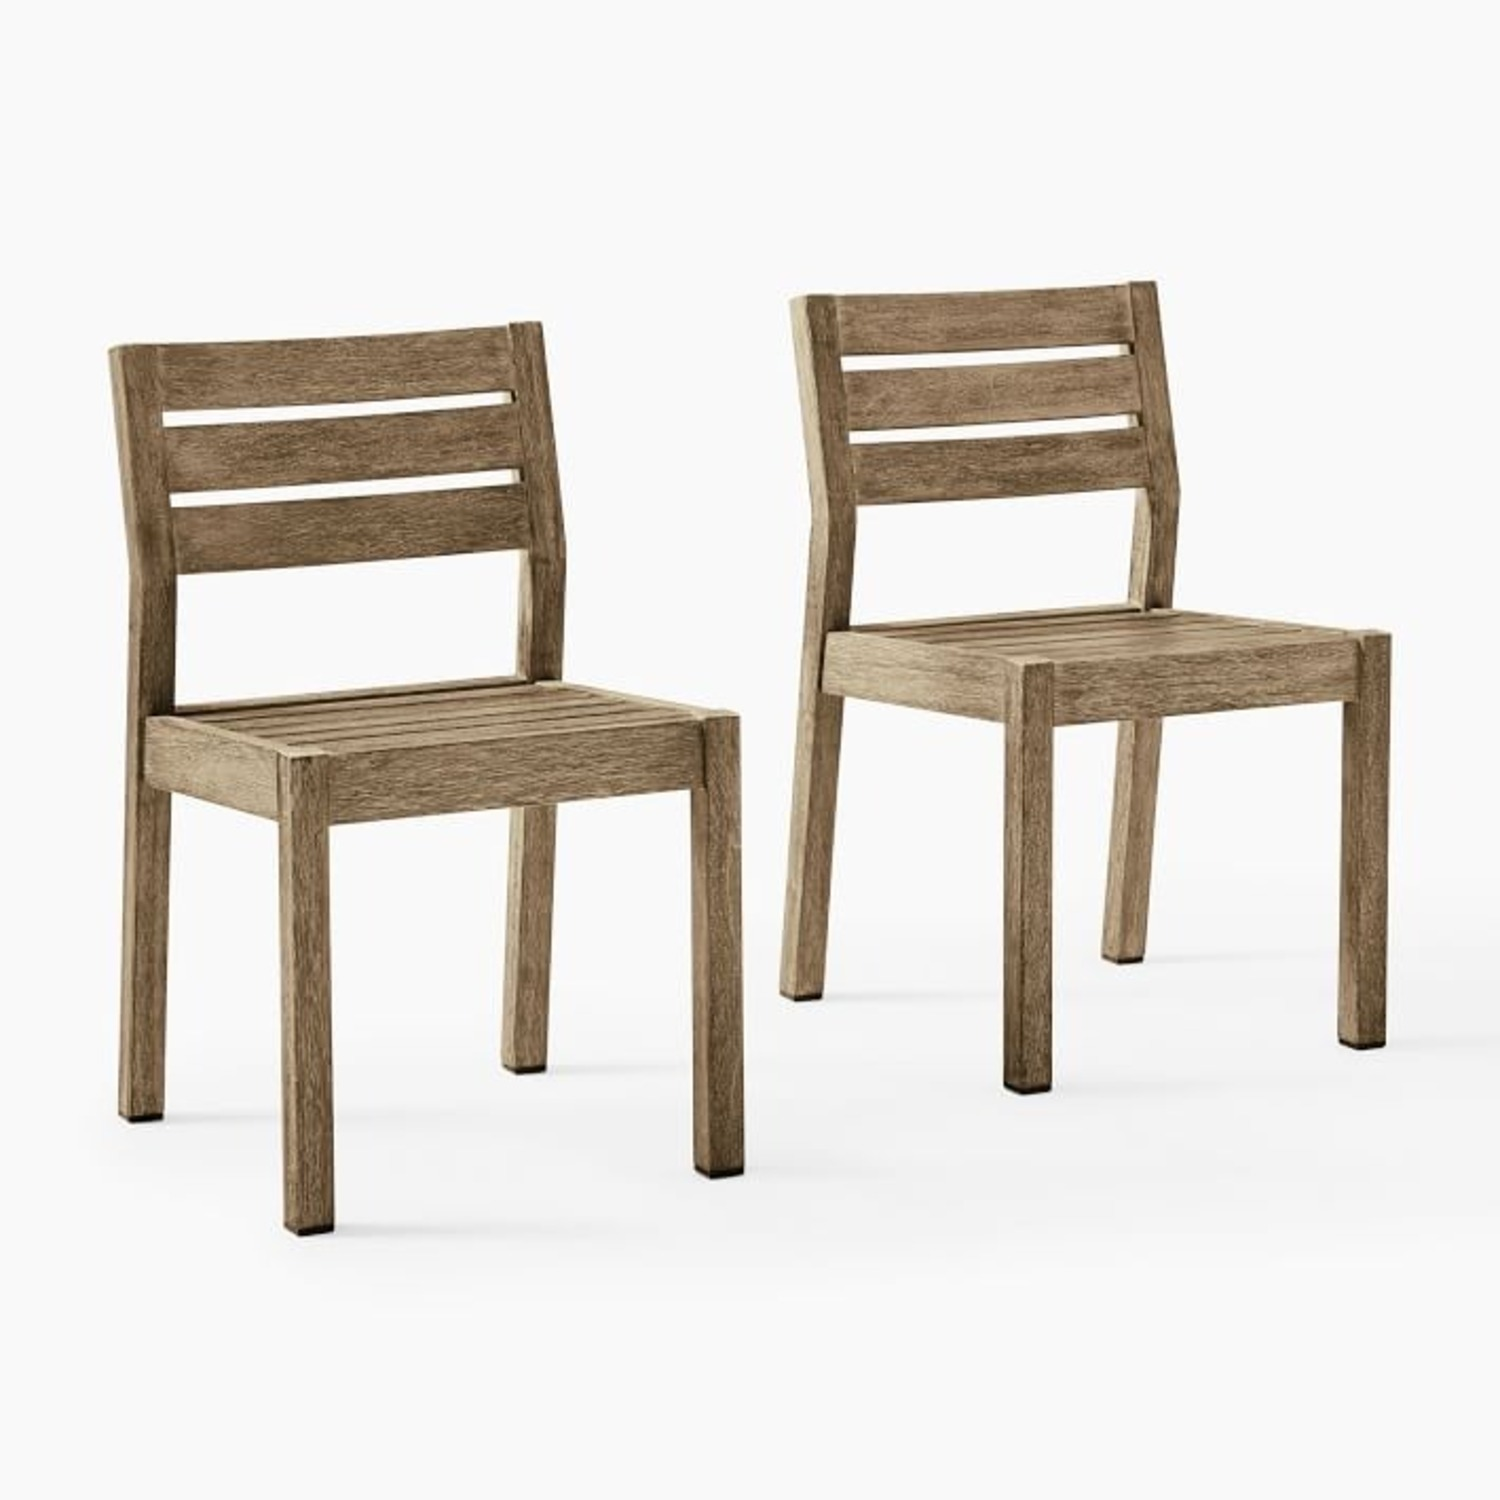 West Elm Portside Dining Chair, Set of 2 - image-1